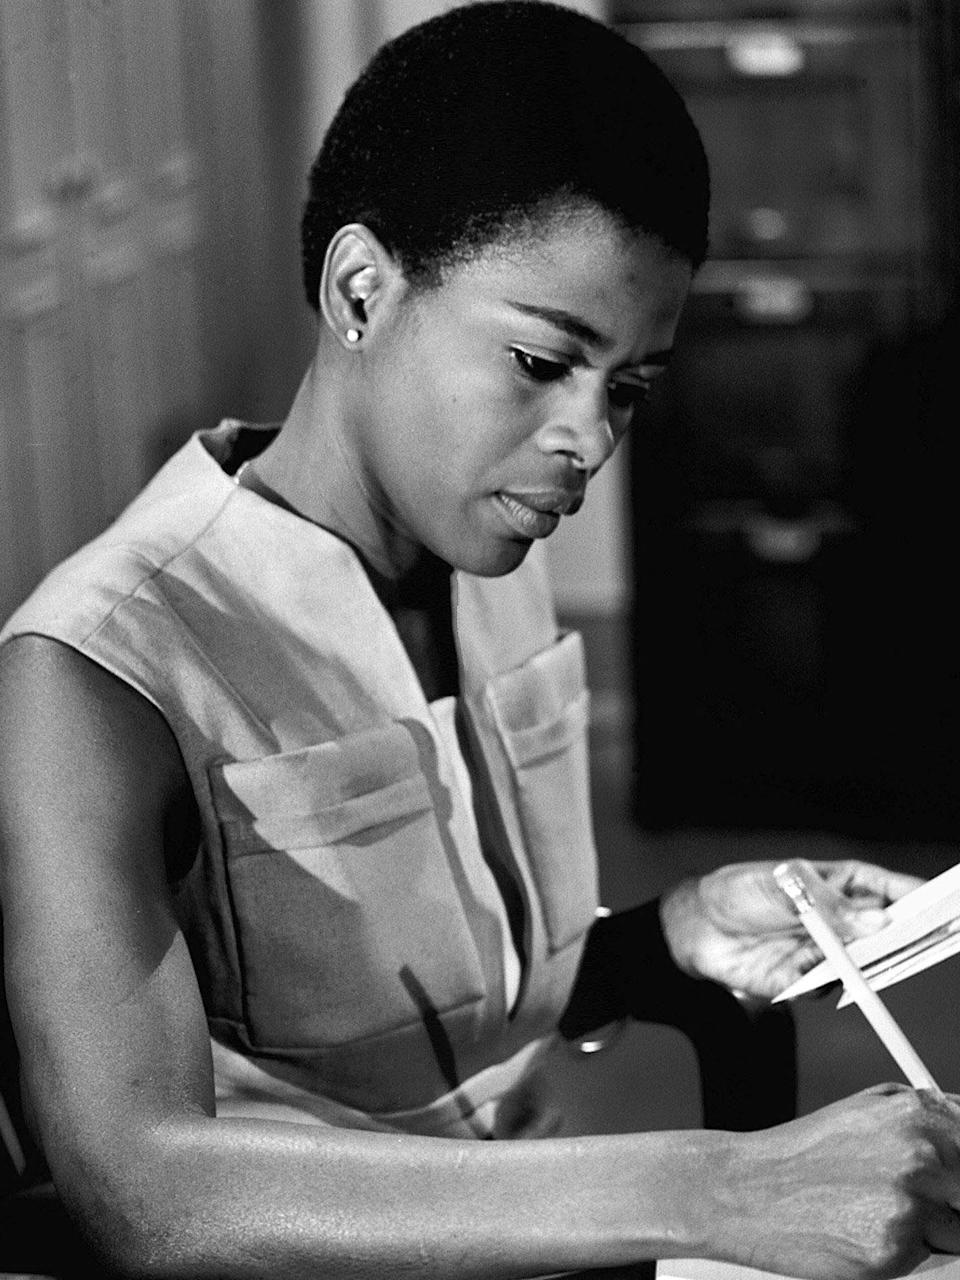 """<p>Cicely Tyson's unforgettable and iconic hair for her 1963 performance in <em>East Side/West Side</em> is what kicked off the natural hair movement. """"I got letters from hairdressers all over the country, telling me that I was affecting their business because their clients were having their hair cut off so they could wear it like the girl on television,"""" she shared on <em><a href=""""https://www.youtube.com/watch?v=saGcqJPXG1s"""" rel=""""nofollow noopener"""" target=""""_blank"""" data-ylk=""""slk:Oprah's Master Class"""" class=""""link rapid-noclick-resp"""">Oprah's Master Class</a> </em>back in 2014. </p>"""